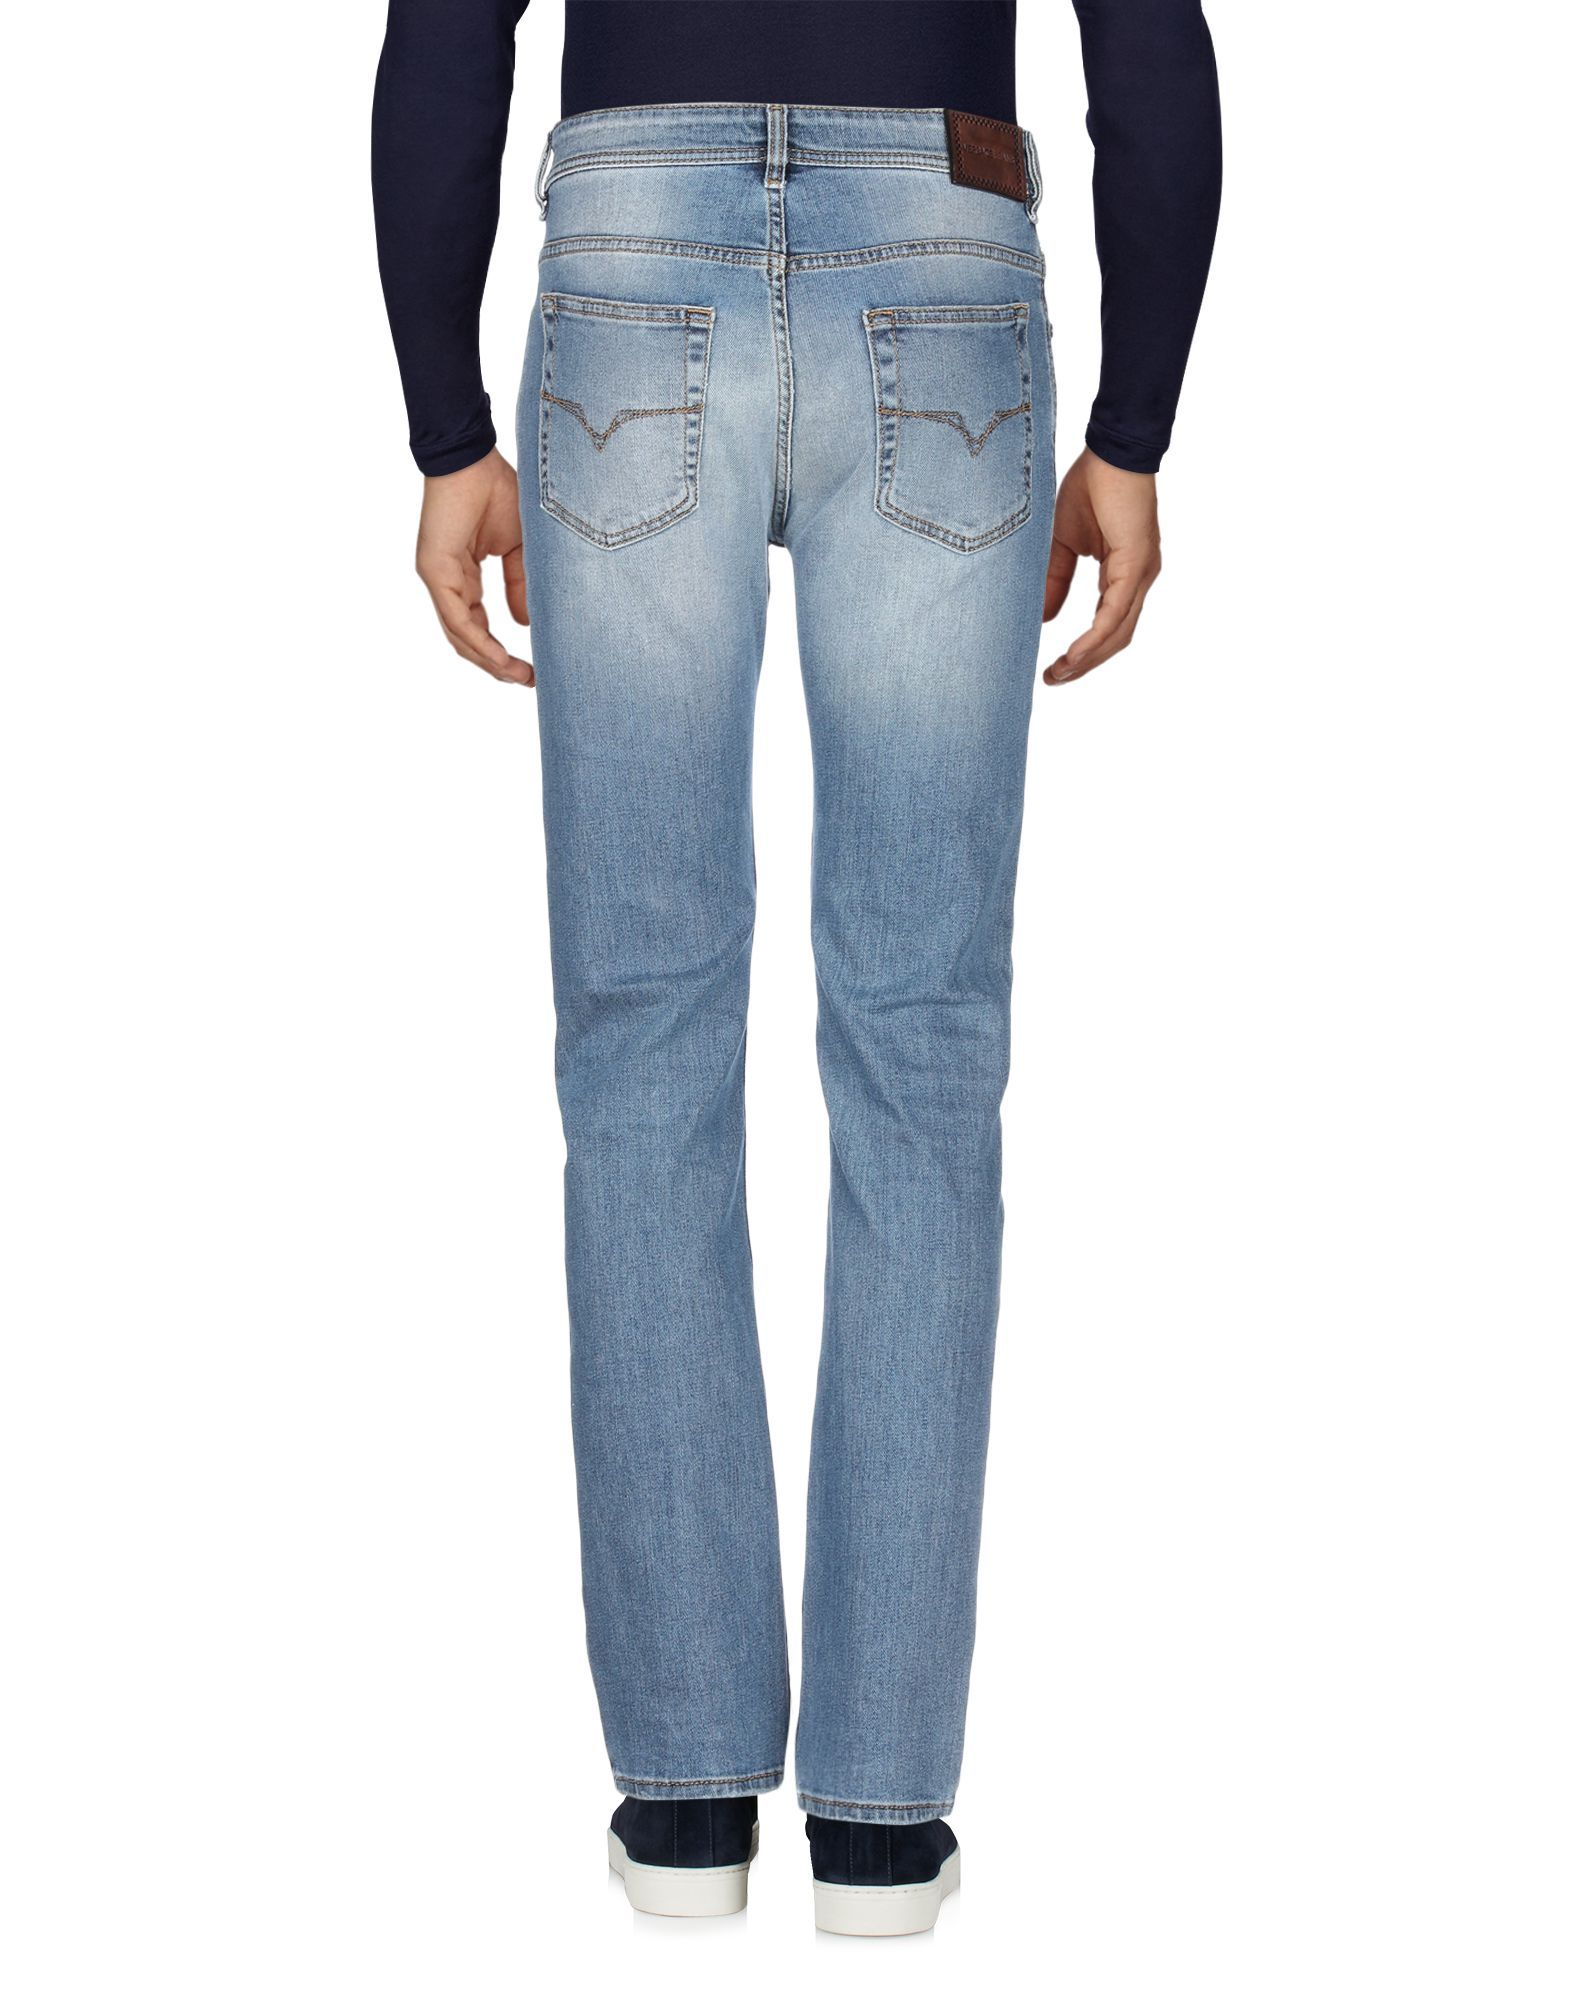 Versace Jeans Blue Cotton High Waisted Jeans